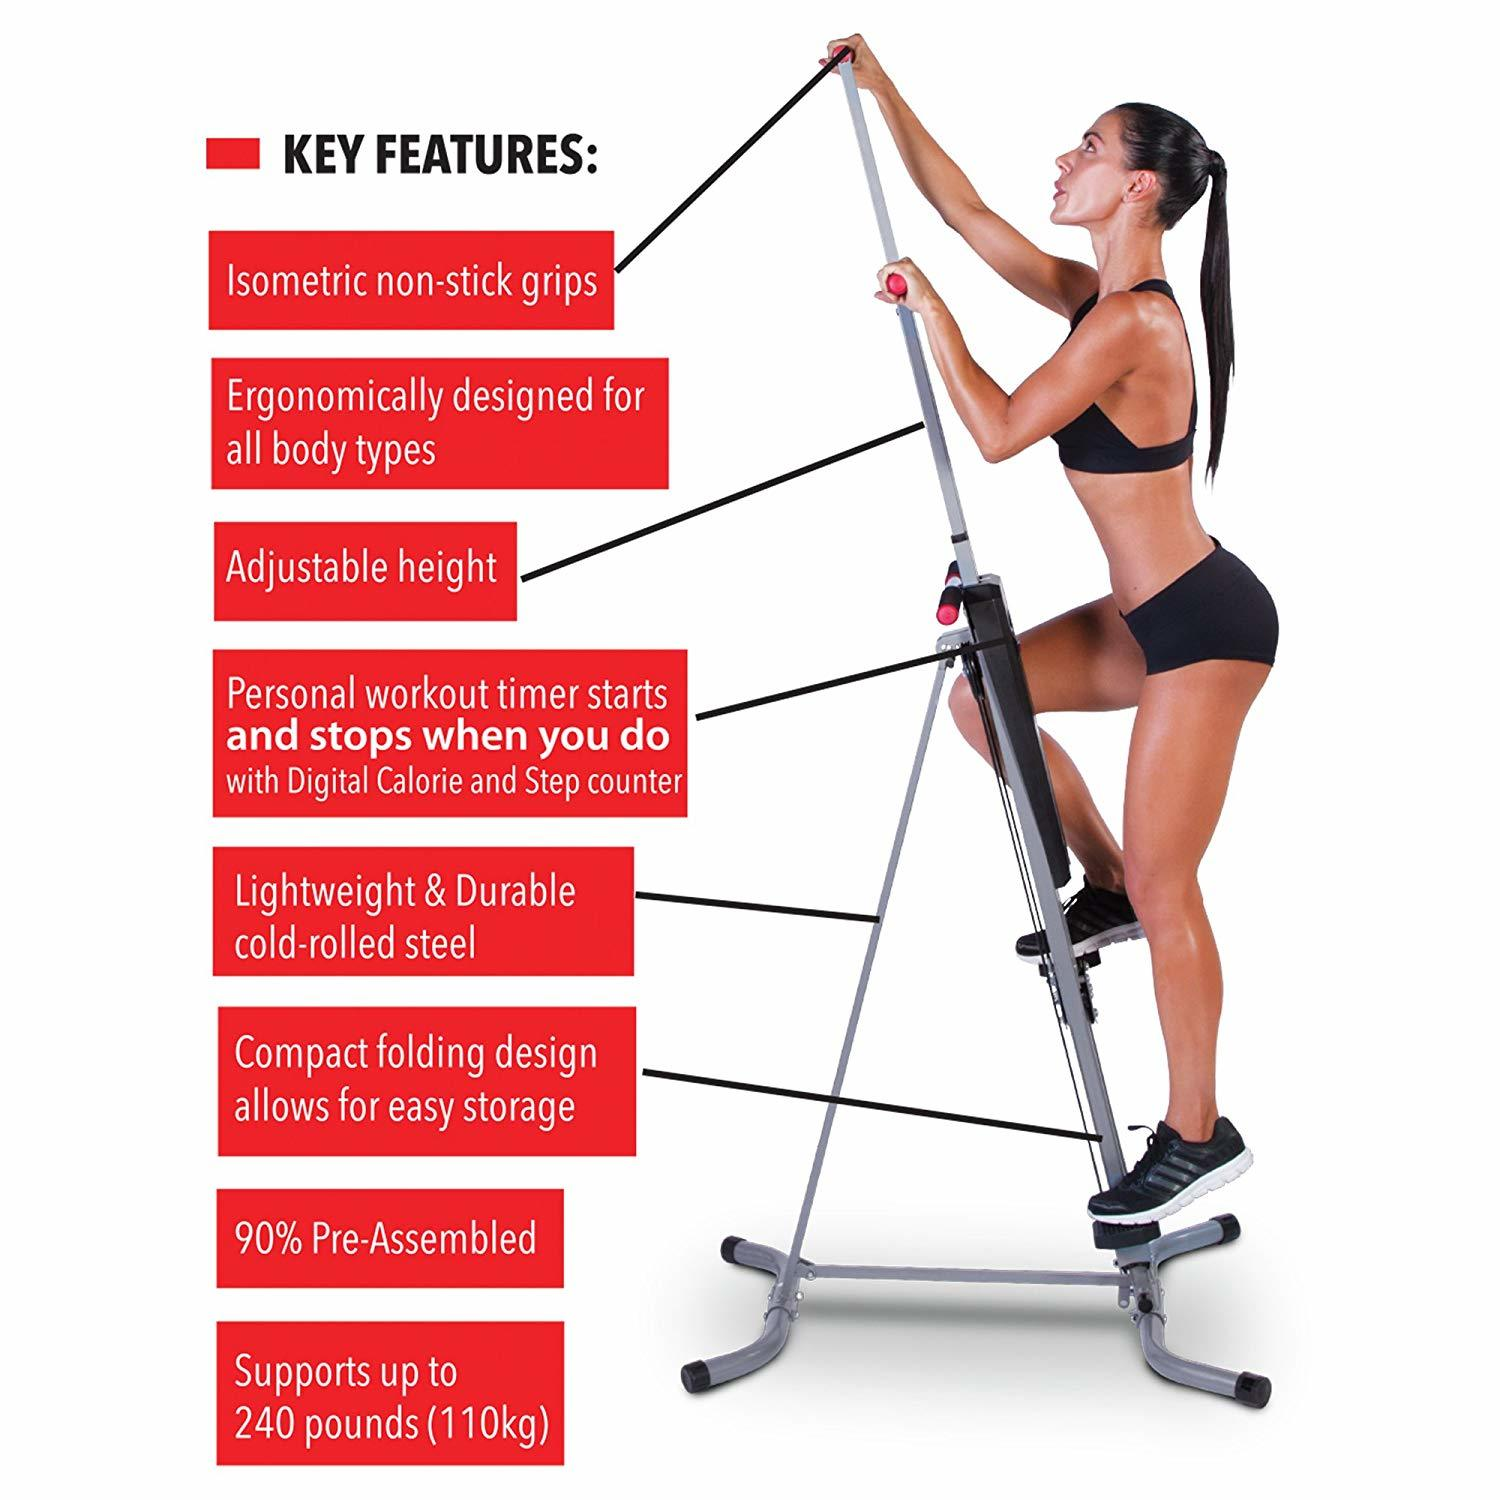 5 BEST vertical climber machines (& AFFORDABLE) 2